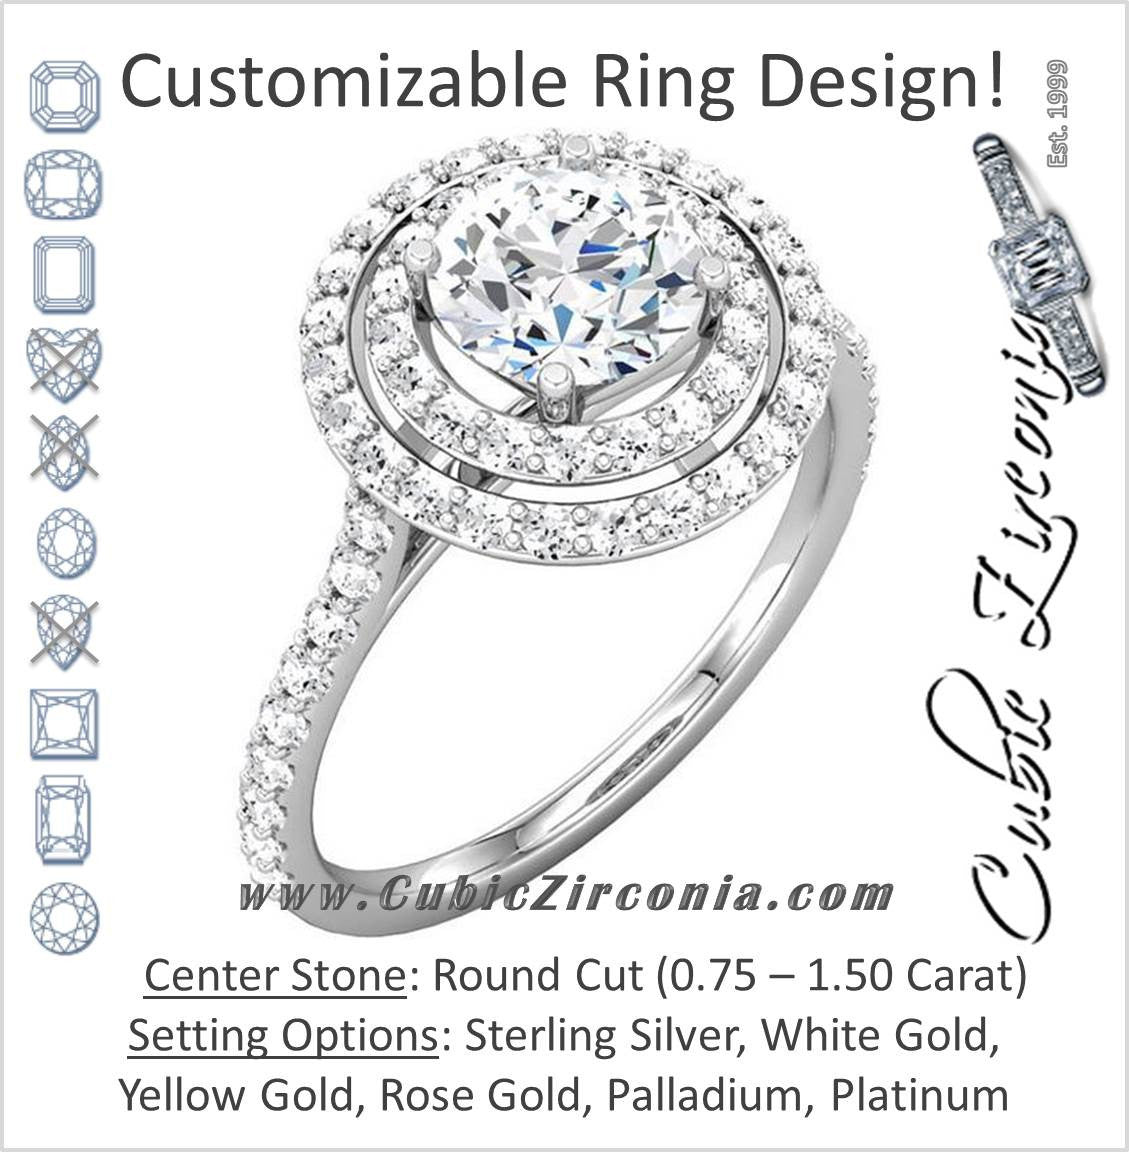 Mini Pave Ring Ring Diamond Engagement Ring Zircon Silver Fiancee ring,Clear Crystal Ring Round Halo Ring Zircon Wedding Jewelry Zircon